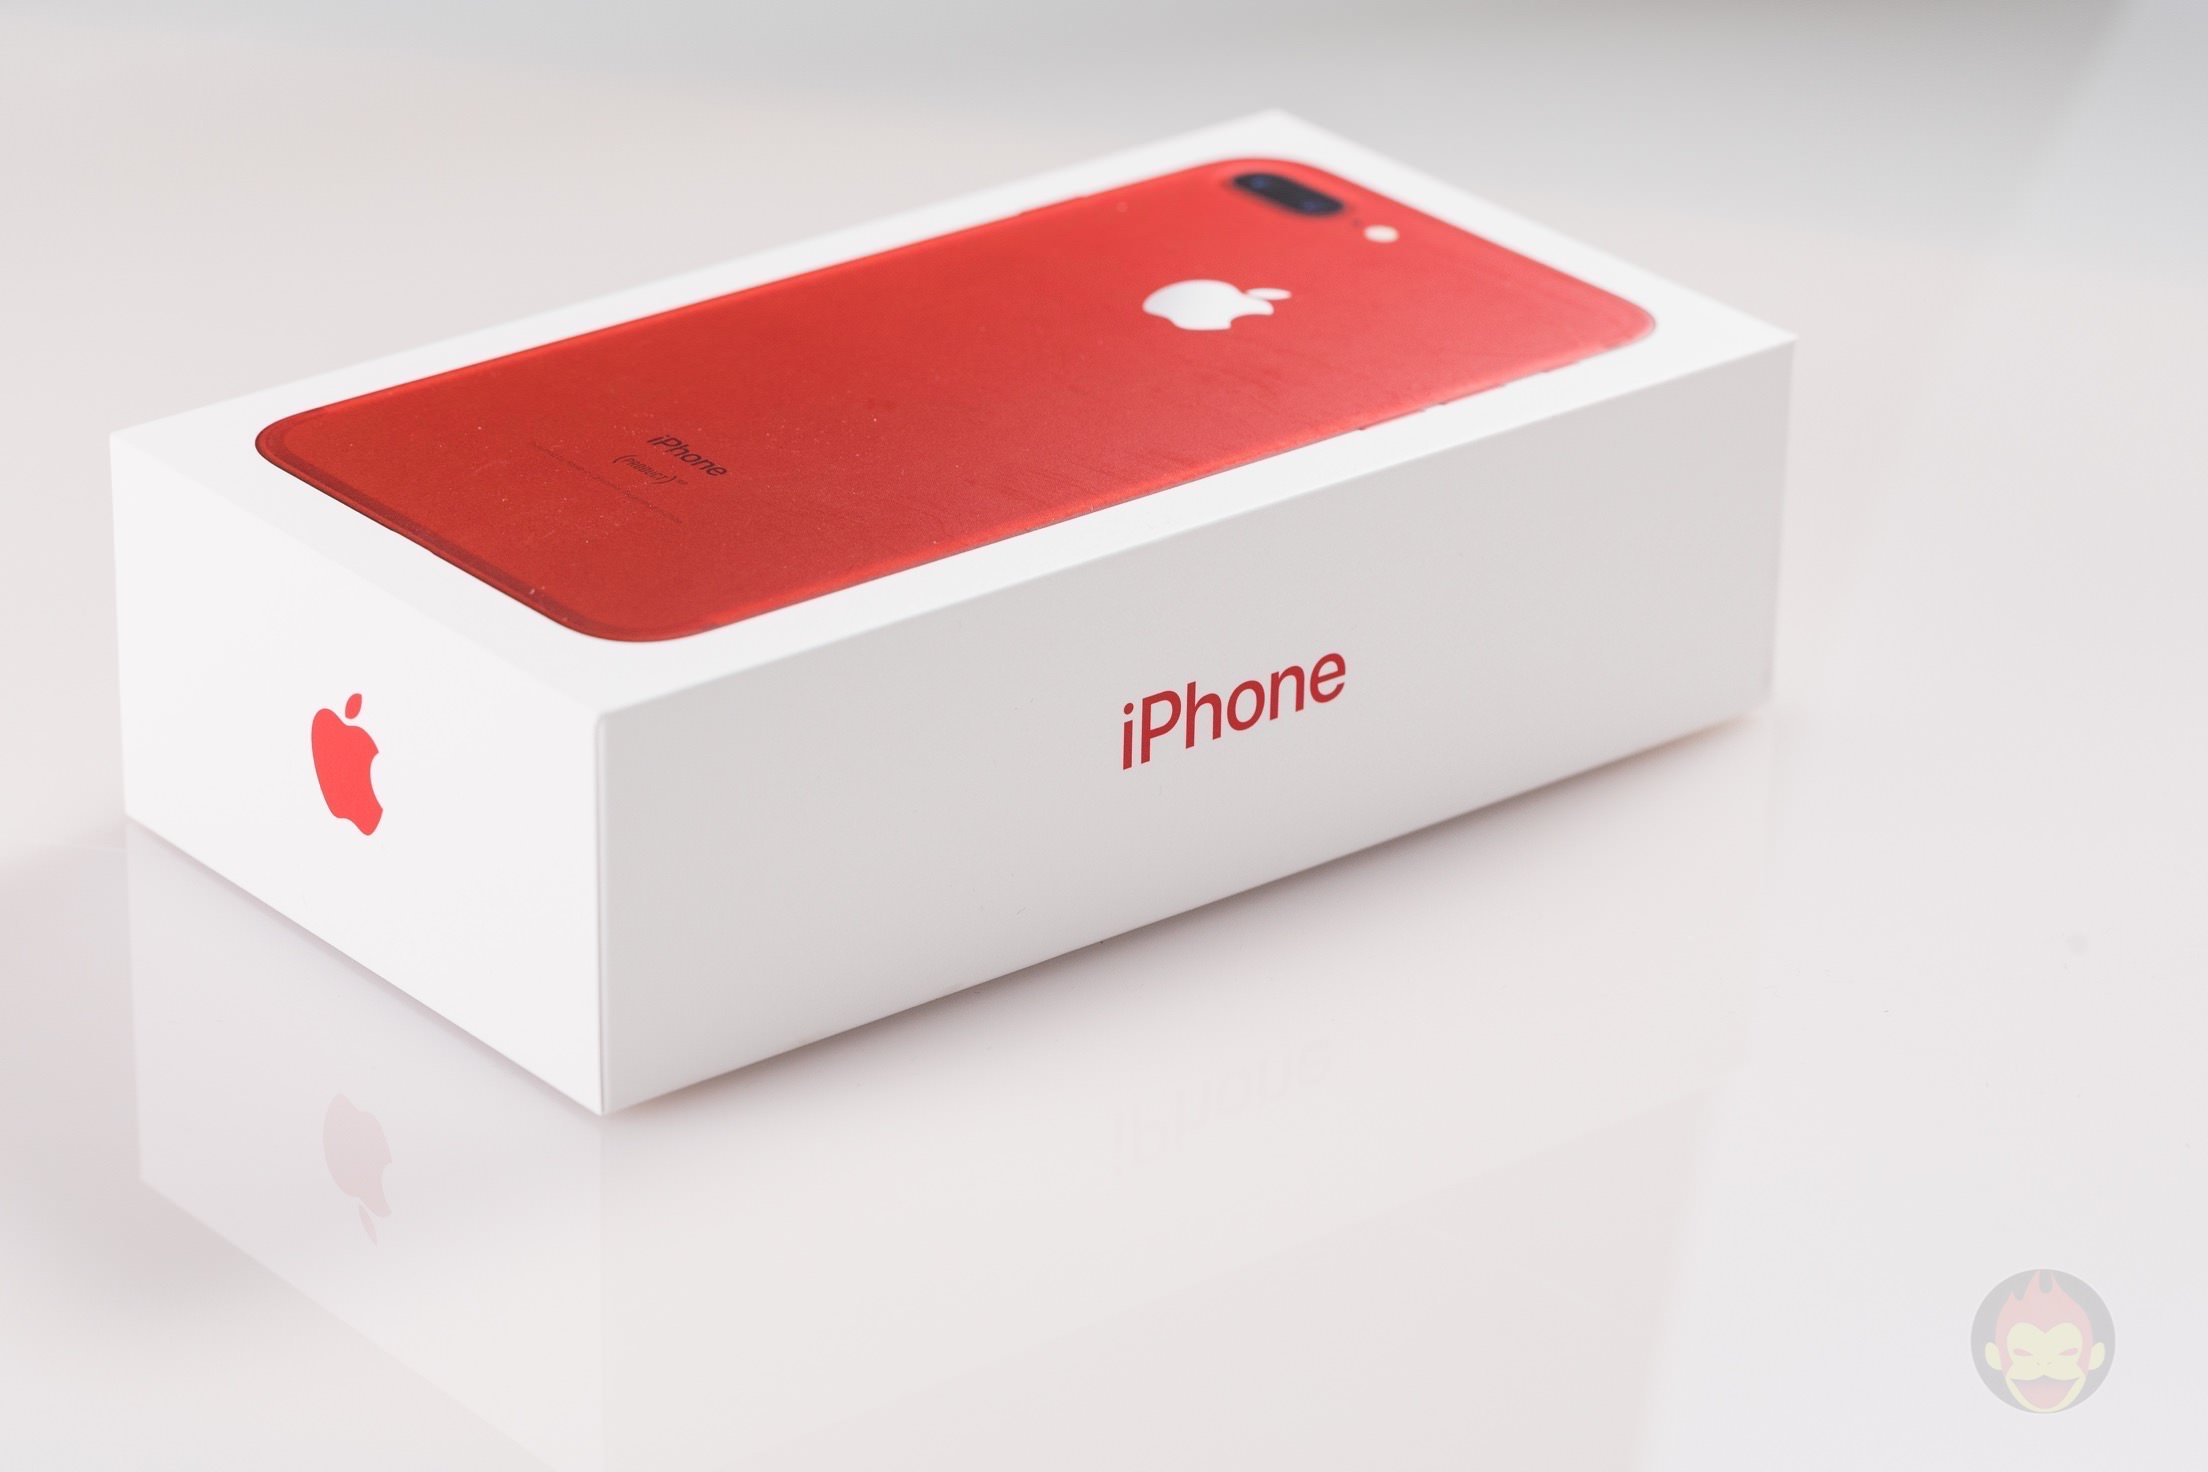 iPhone-7-Product-Red-Special-Edition-14.jpg